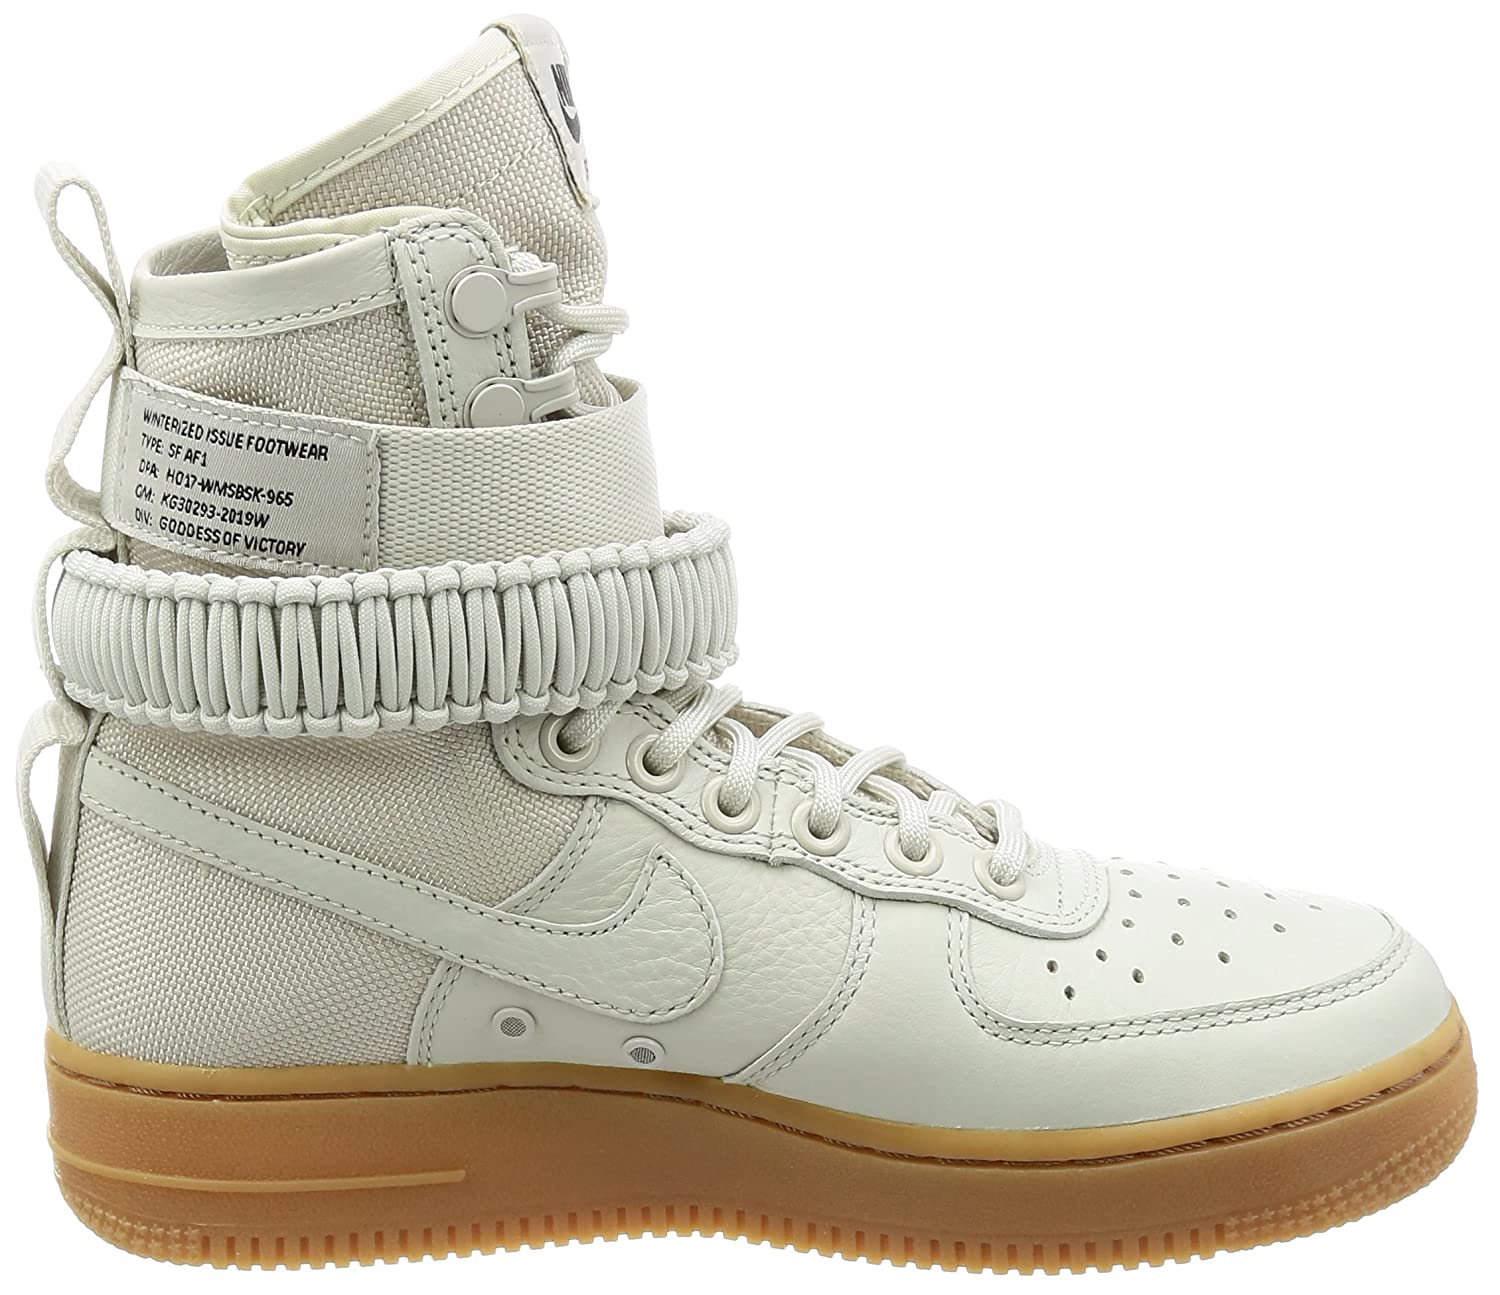 NIKE Women's SF AF1 Casual Shoe B0763R5GSY 9.5 B(M) US|Light/Bone/Light/Bone